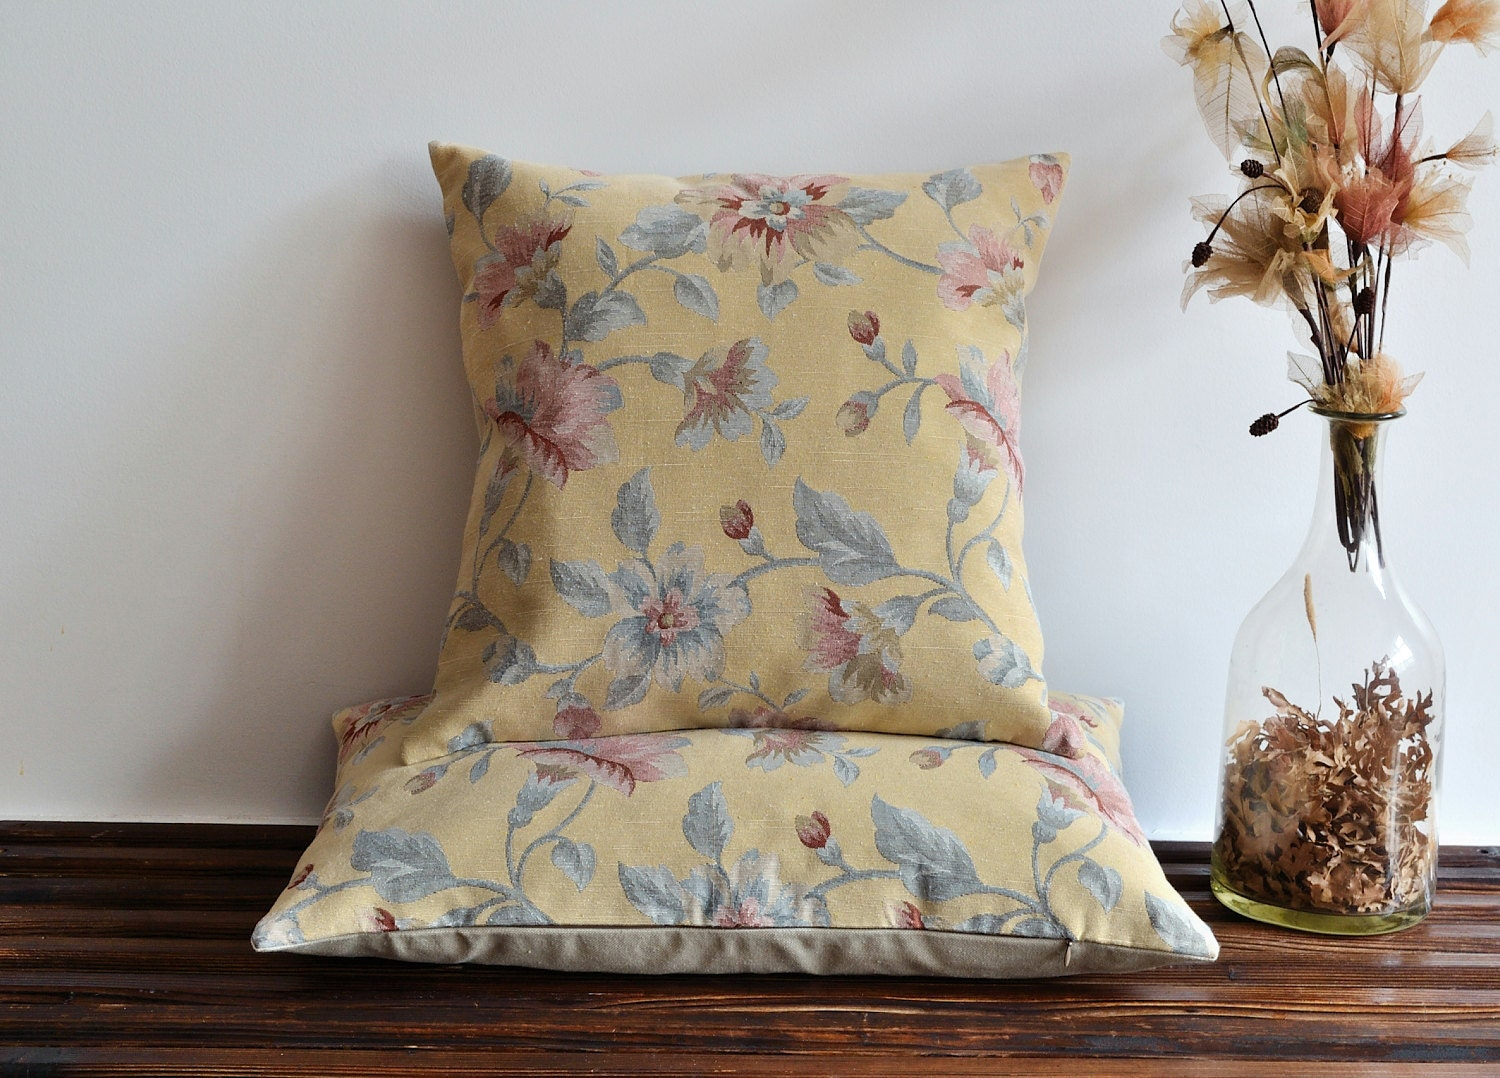 Pale Yellow Throw Pillow Cover : Pale Yellow Floral Pillow Cover Tapestry Fabric Pillow